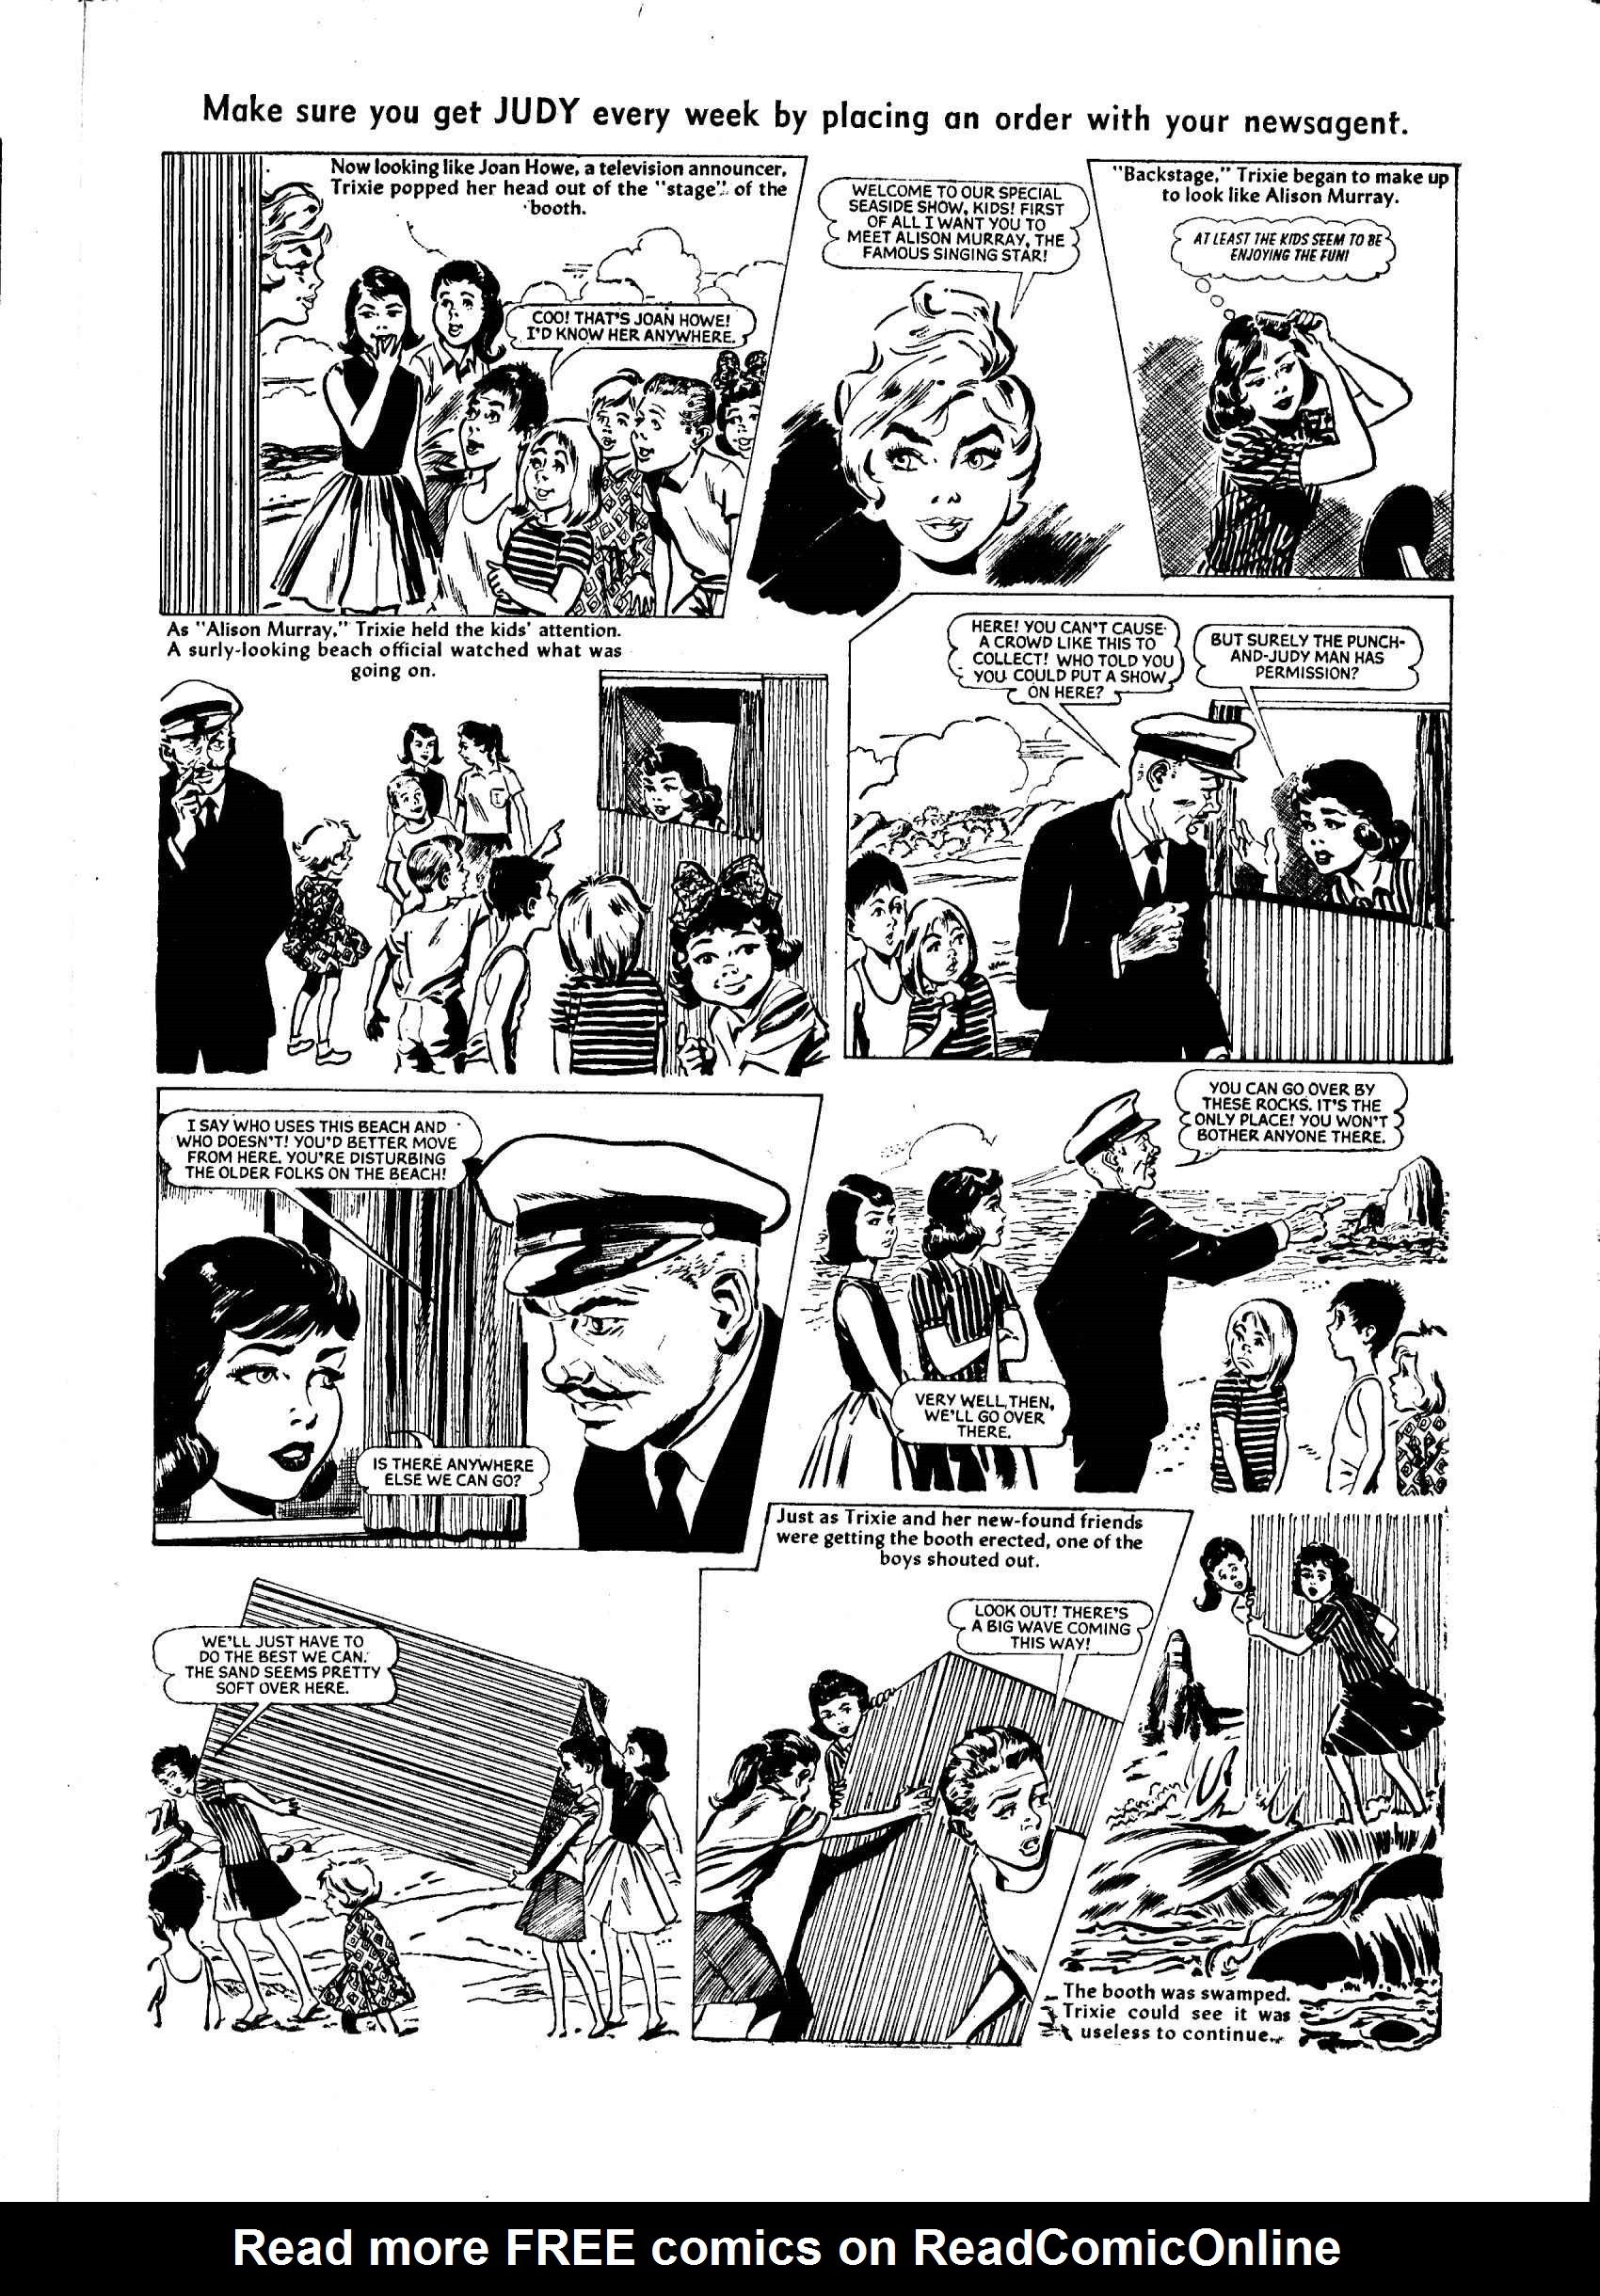 Read online Judy comic -  Issue #55 - 11